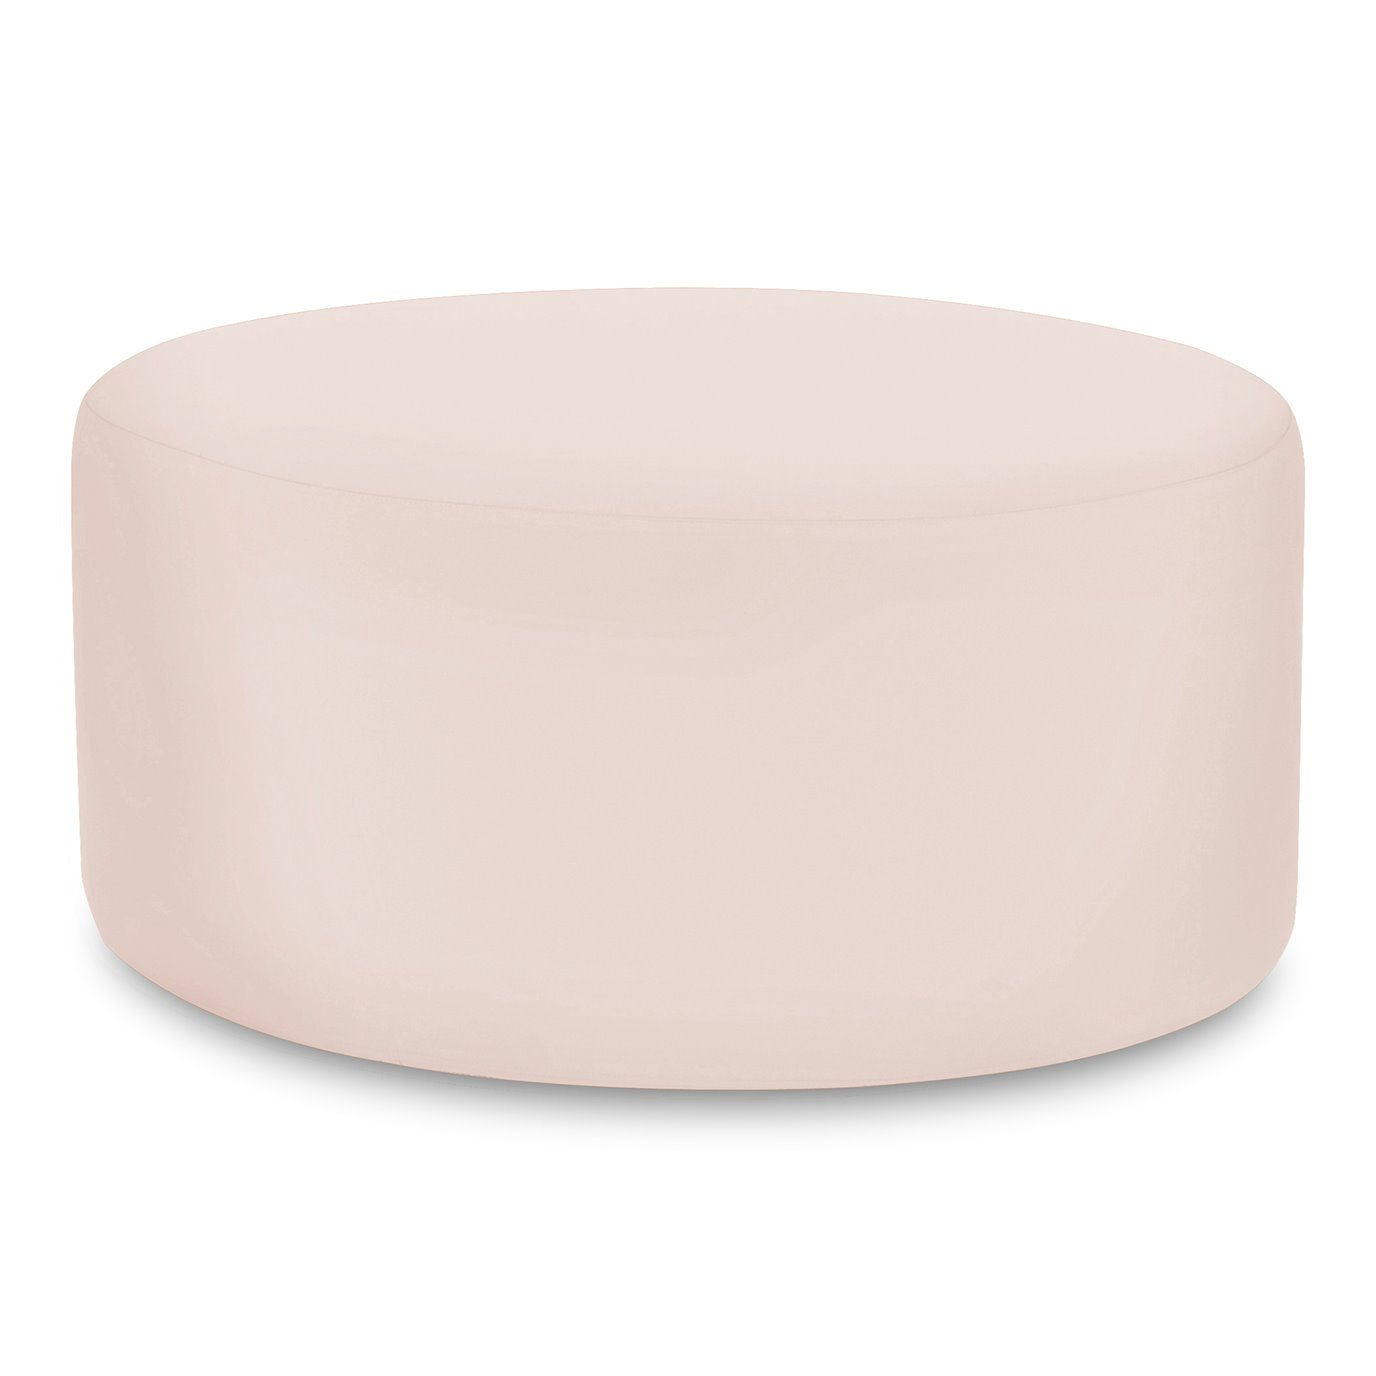 Howard Elliott Universal Round Ottoman Cover Sunbrella Outdoor Seascape Sand - Cover Only, Base Not Included